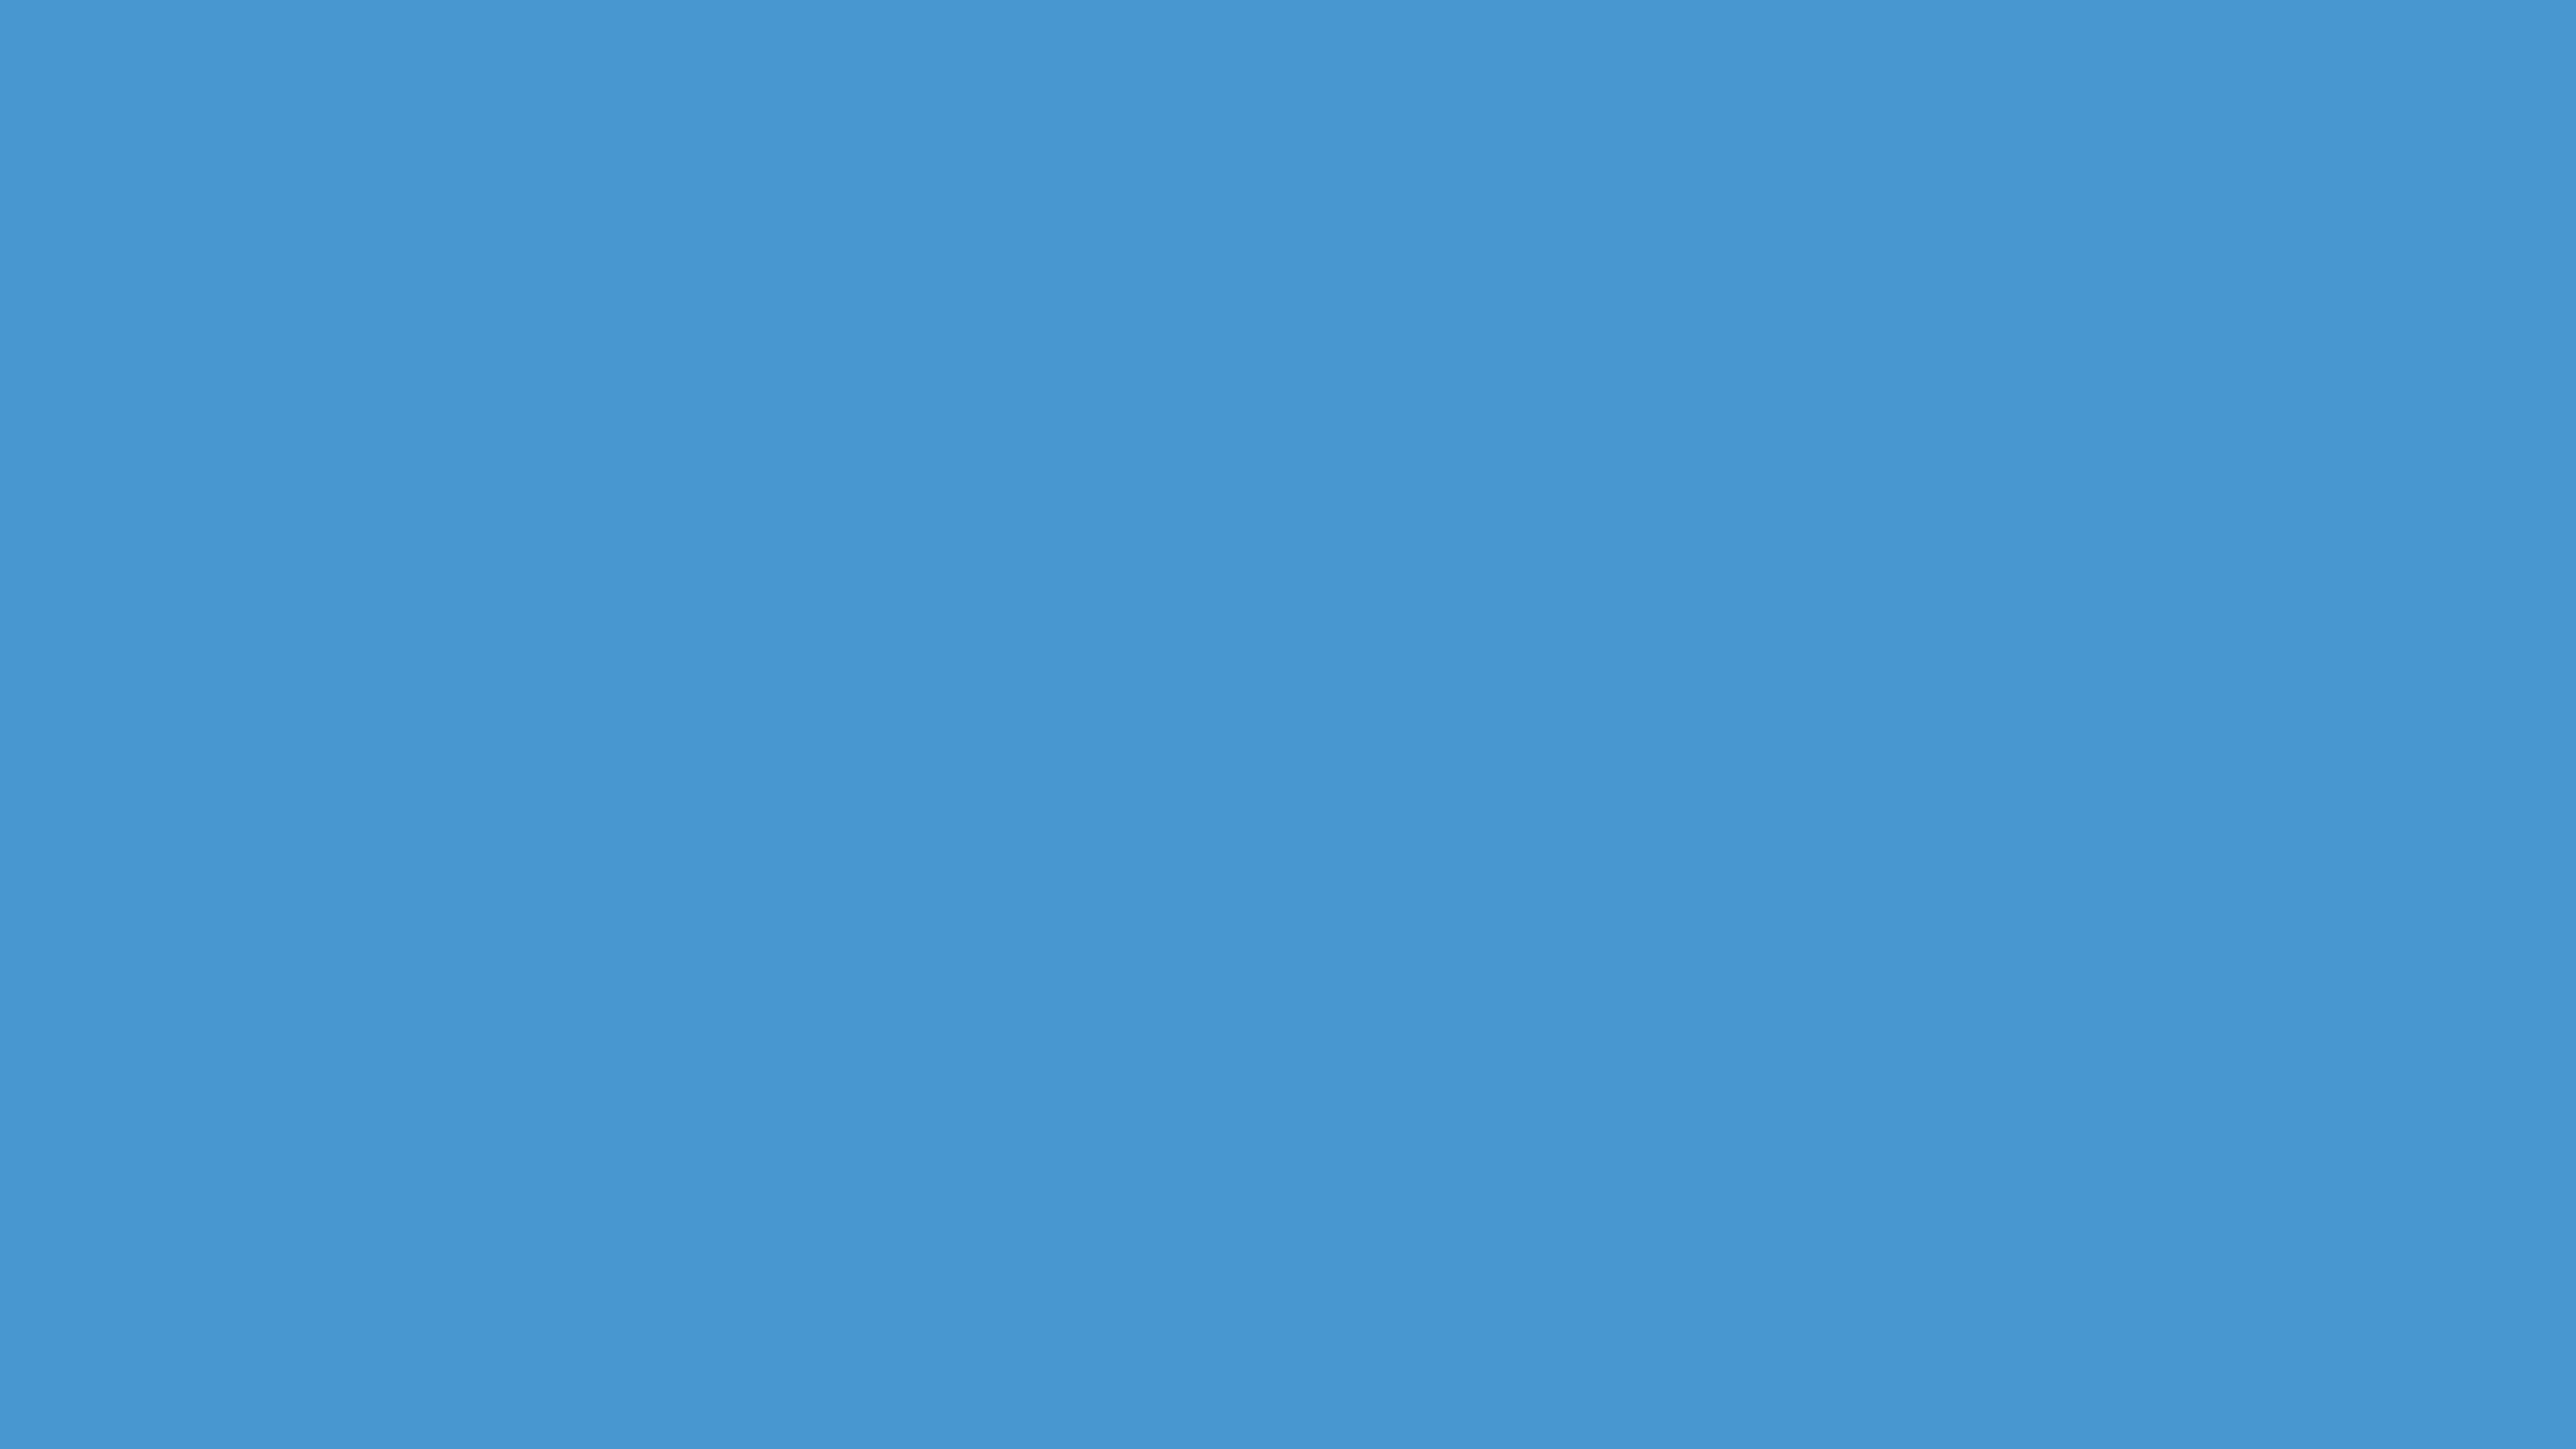 3840x2160 Celestial Blue Solid Color Background